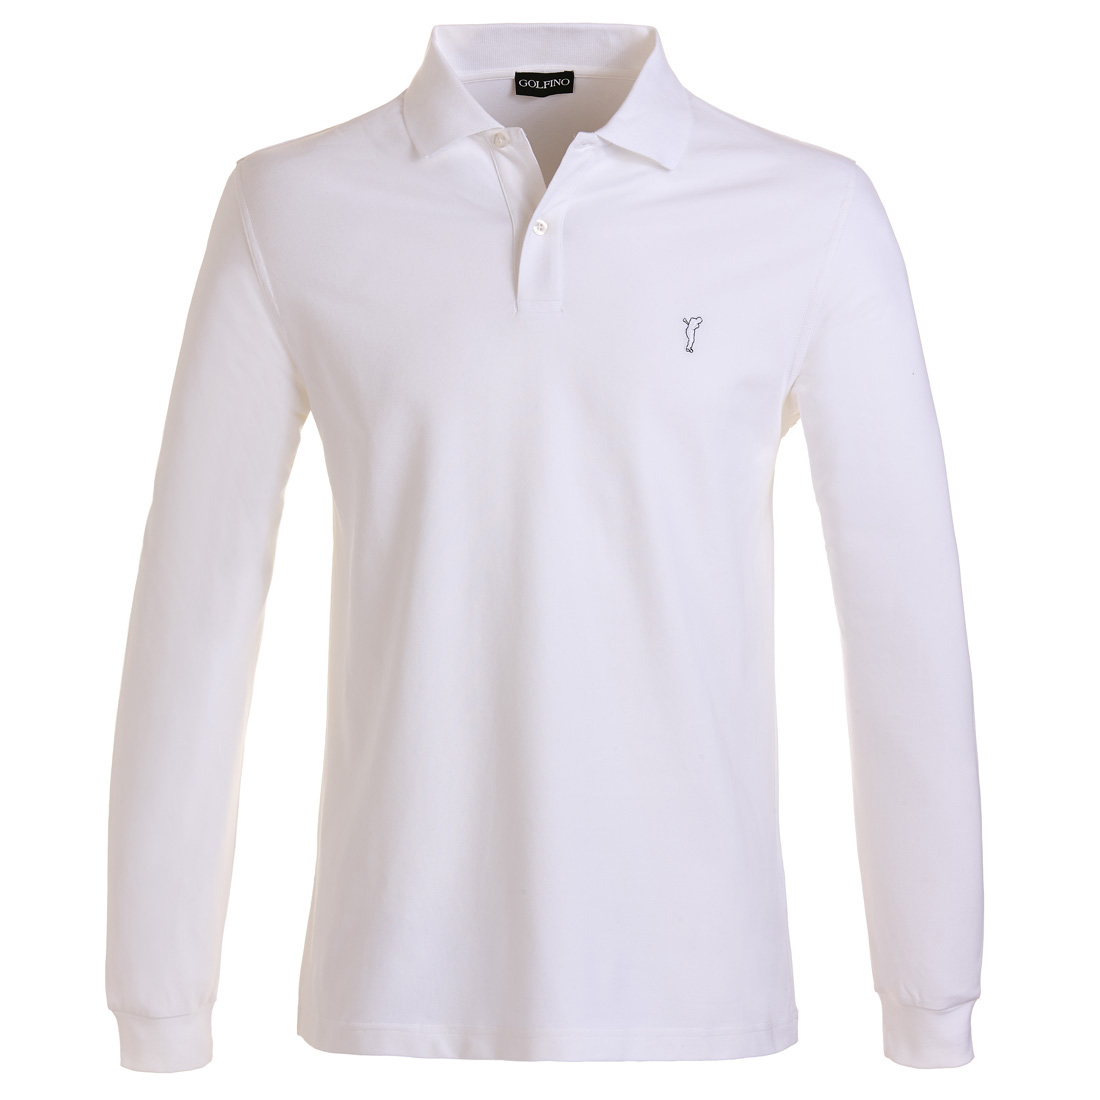 Long-sleeve functional golf polo with sun protection and moisture management